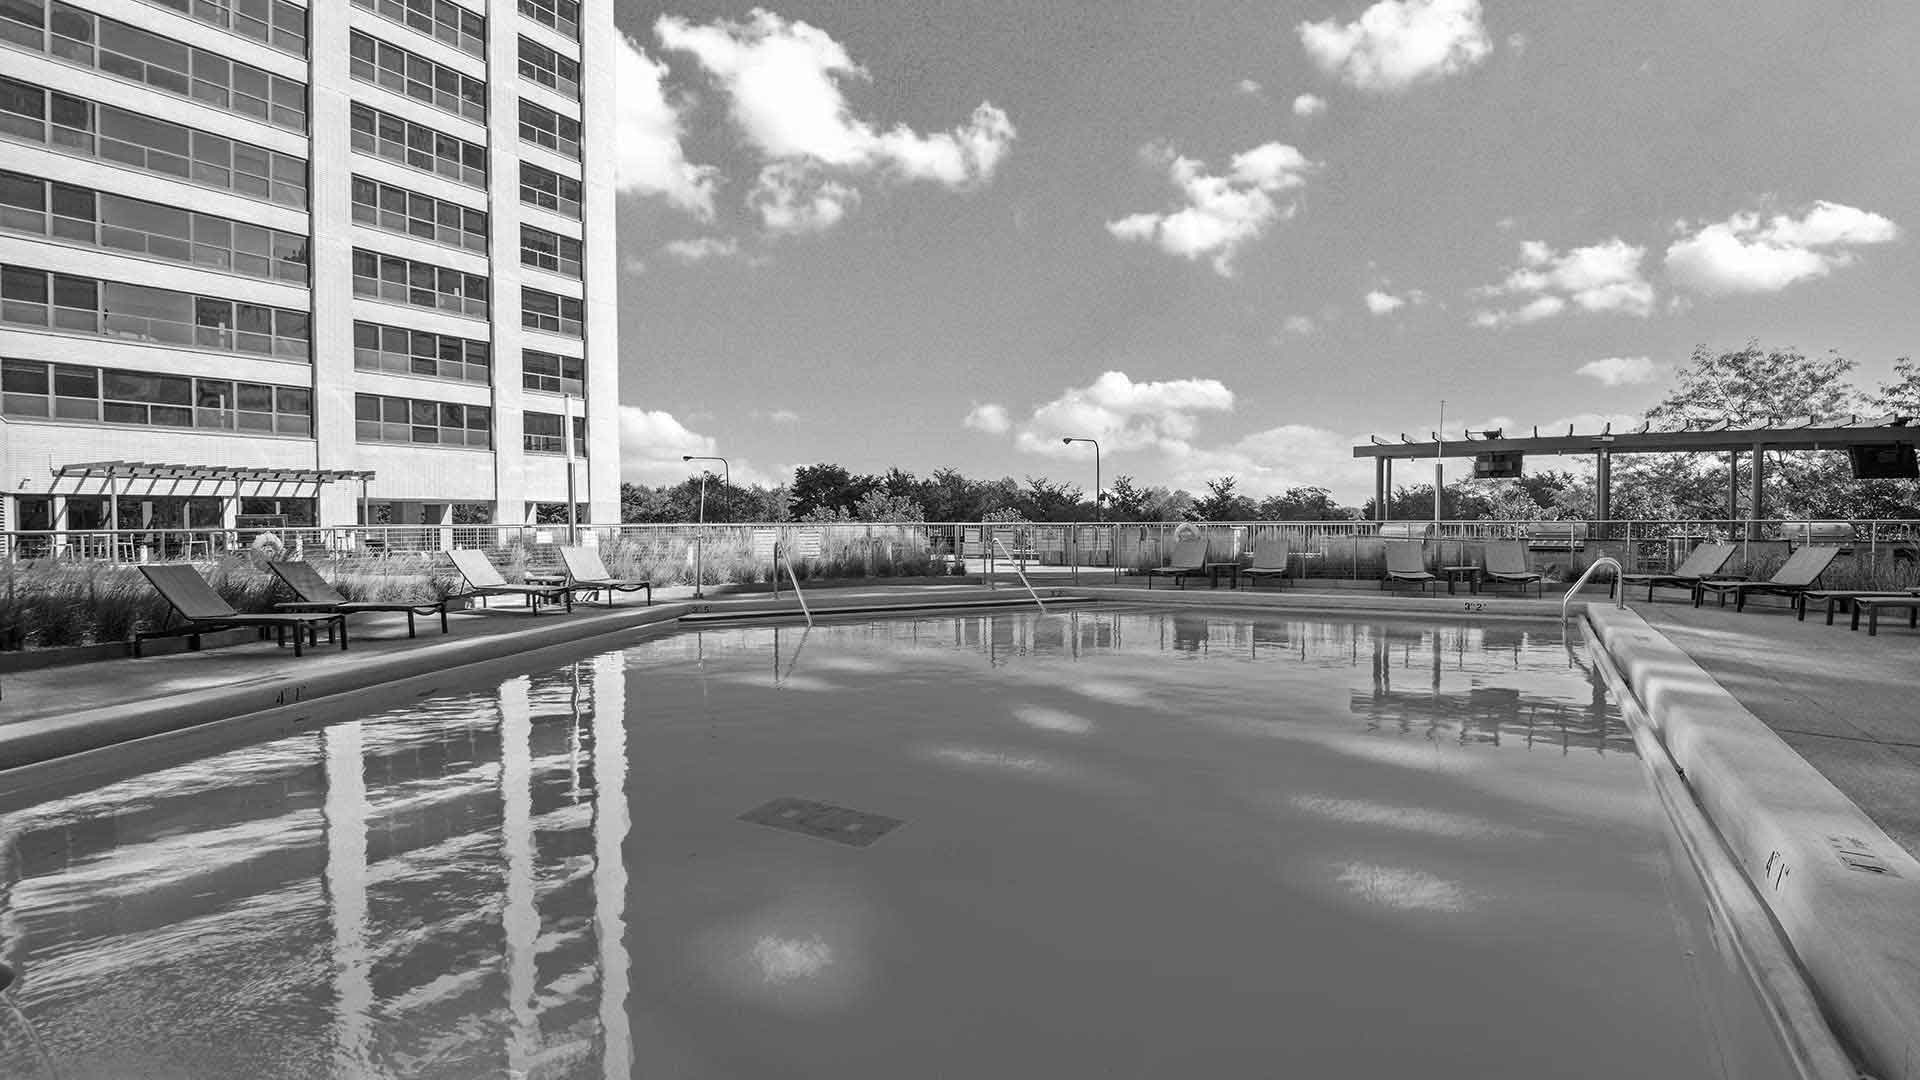 A close view of the outdoor pool and sundeck at Eleven Thirty on a sunny day.